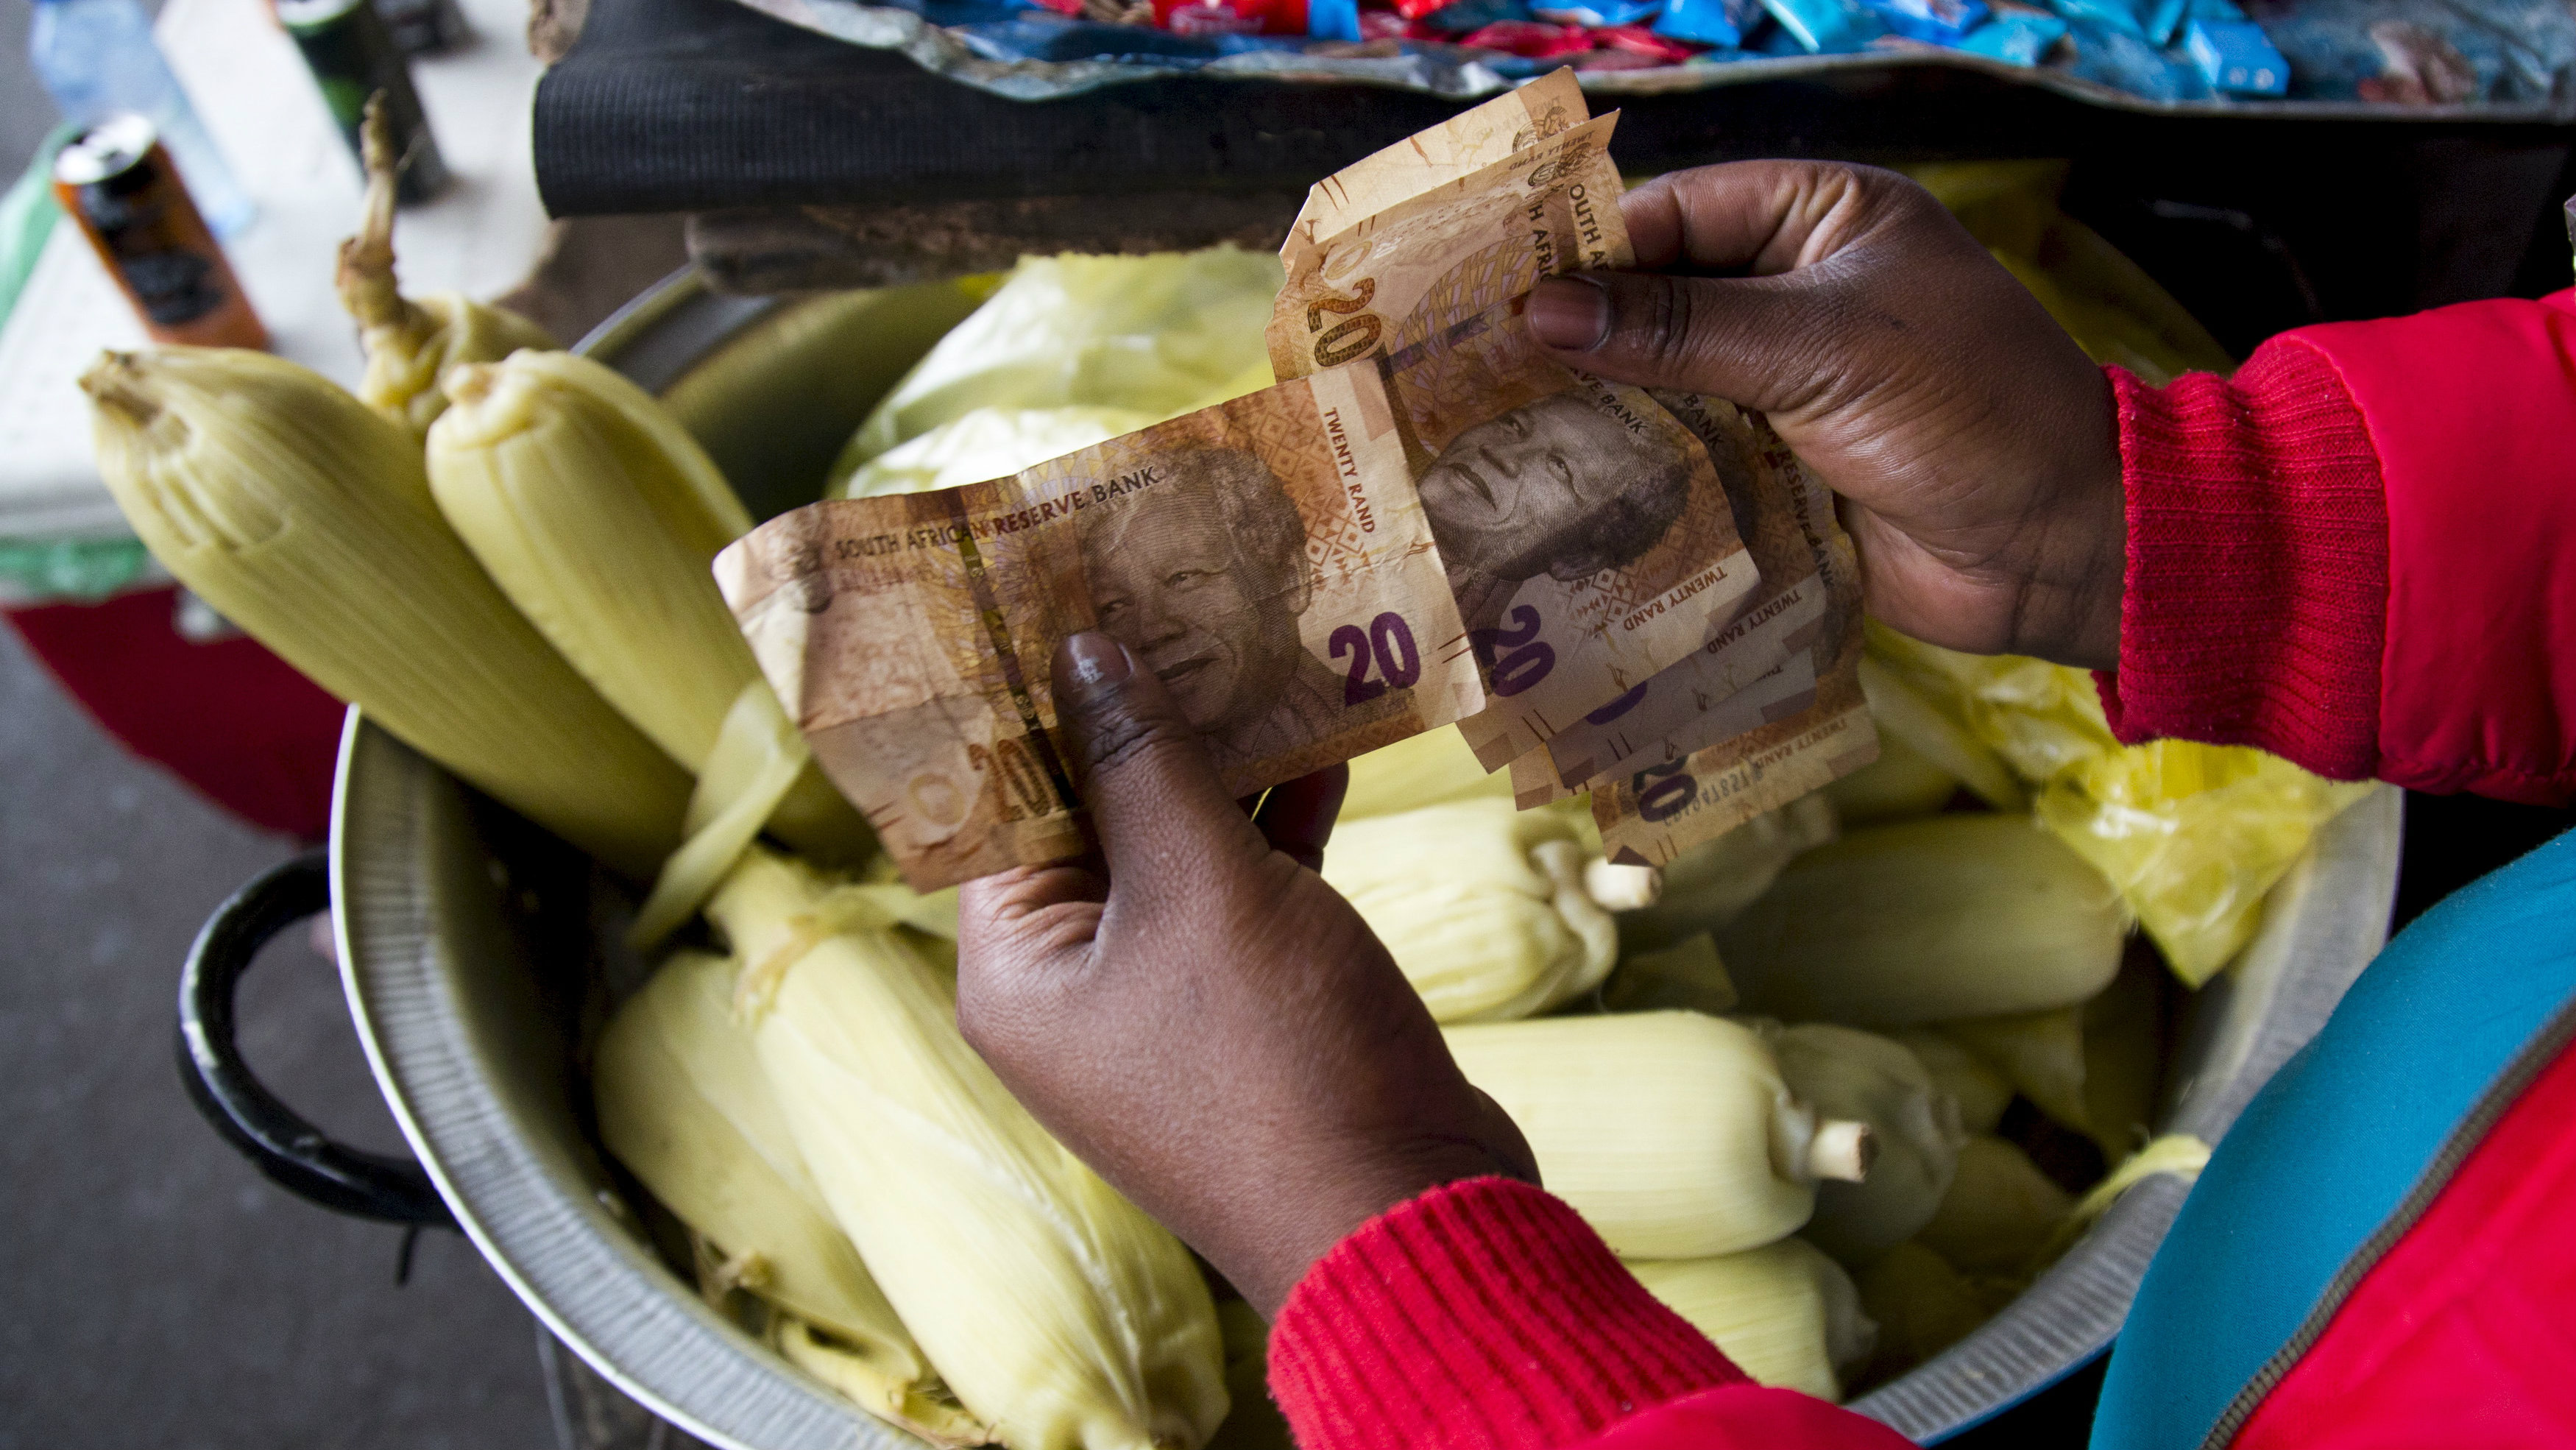 A street trader counts out change for a customer in Durban, September 8, 2015. South Africa's rand firmed more than 1 percent against the dollar, recovering from record lows in the previous session as bets on a rate hike in United States faded due to worries over global growth. The rand rose 1.04 percent to 13.8150 per dollar.